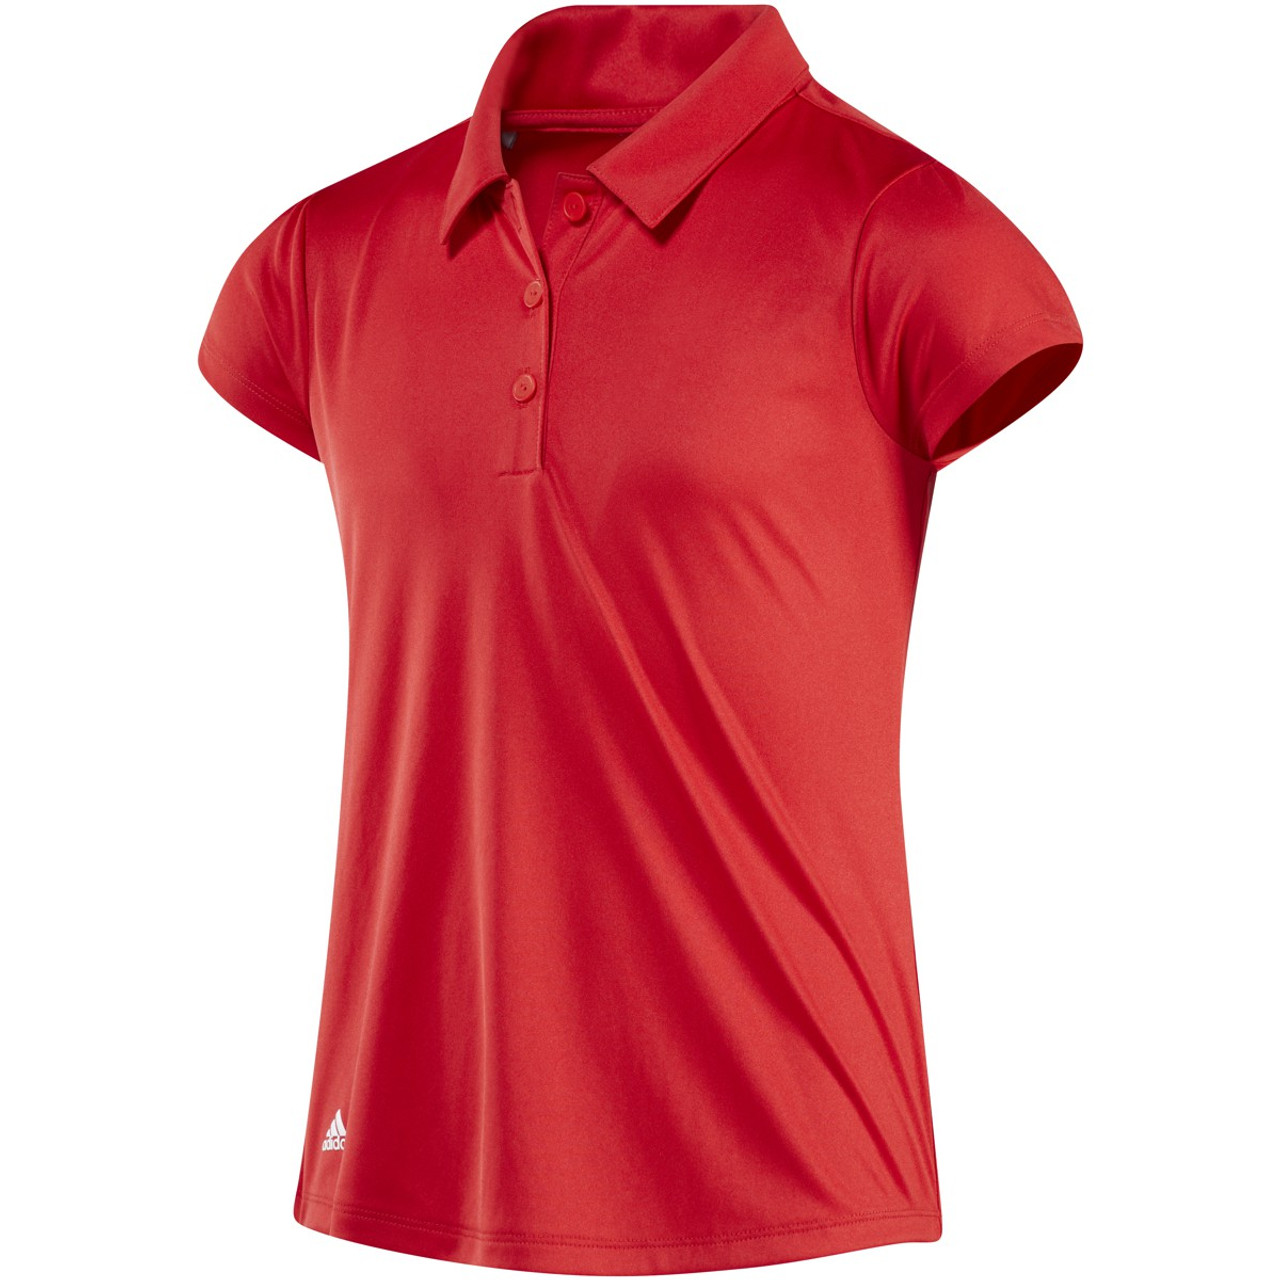 Adidas Girls 3-Stripe Solid Polo - Collegiate Red